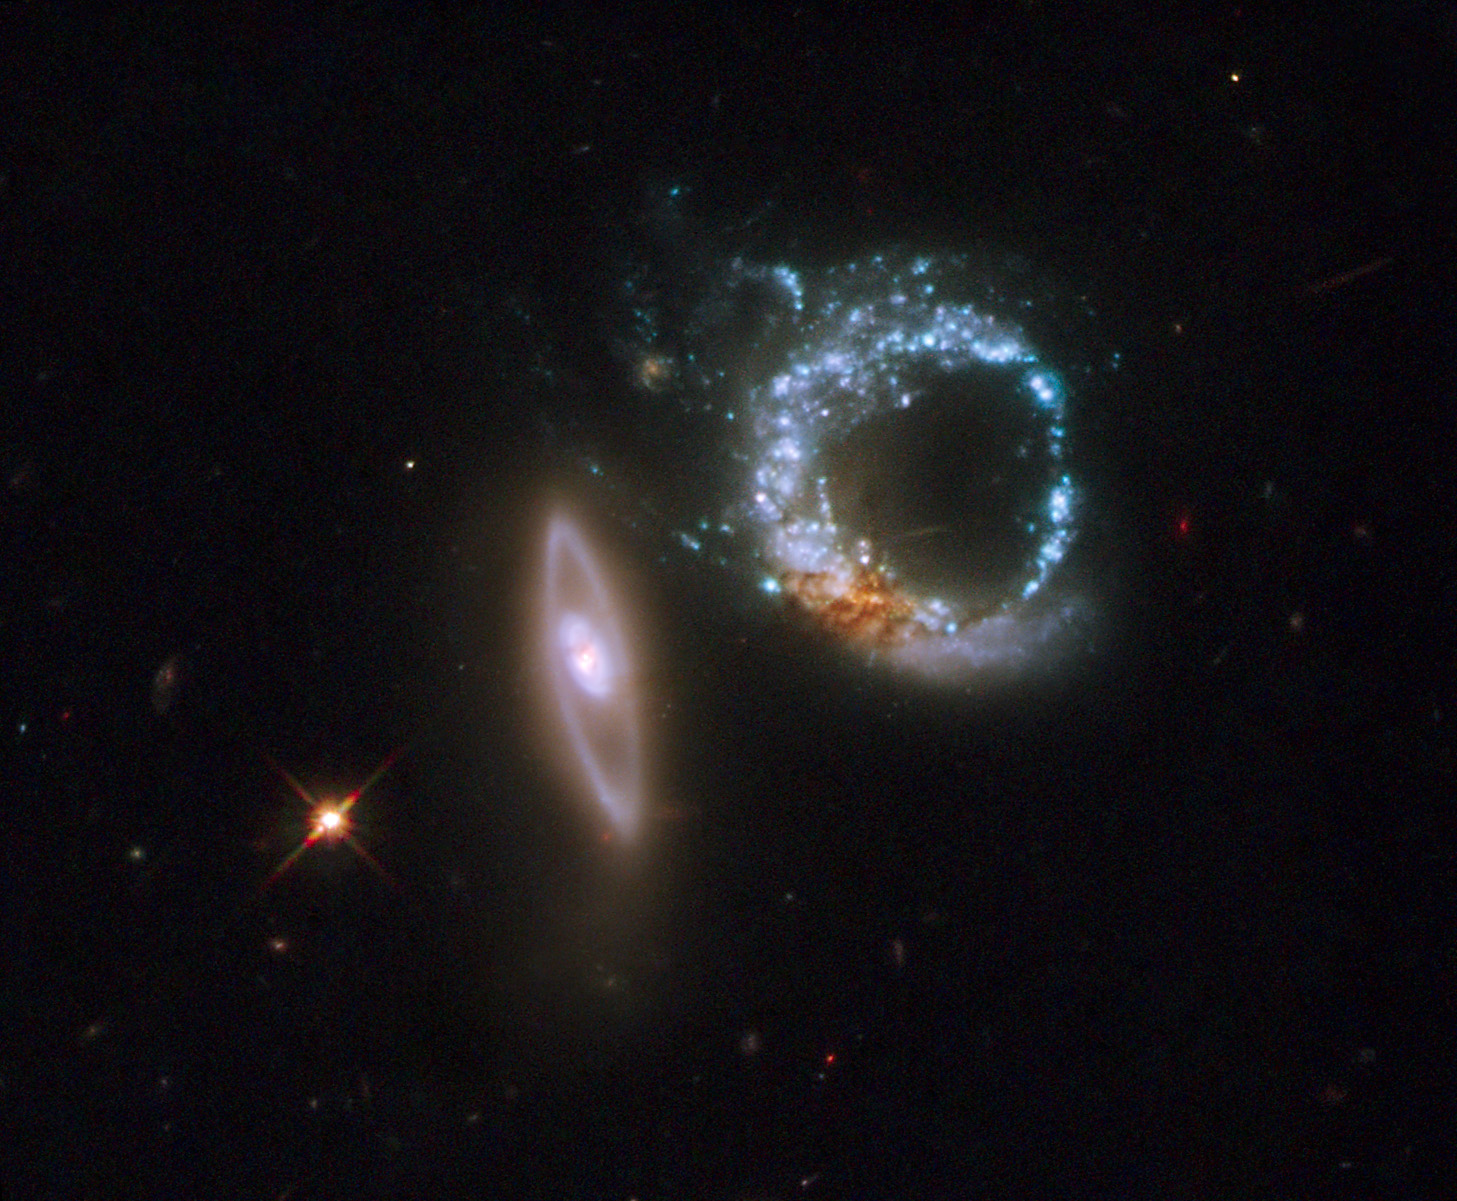 [Hubble Space Telescope]